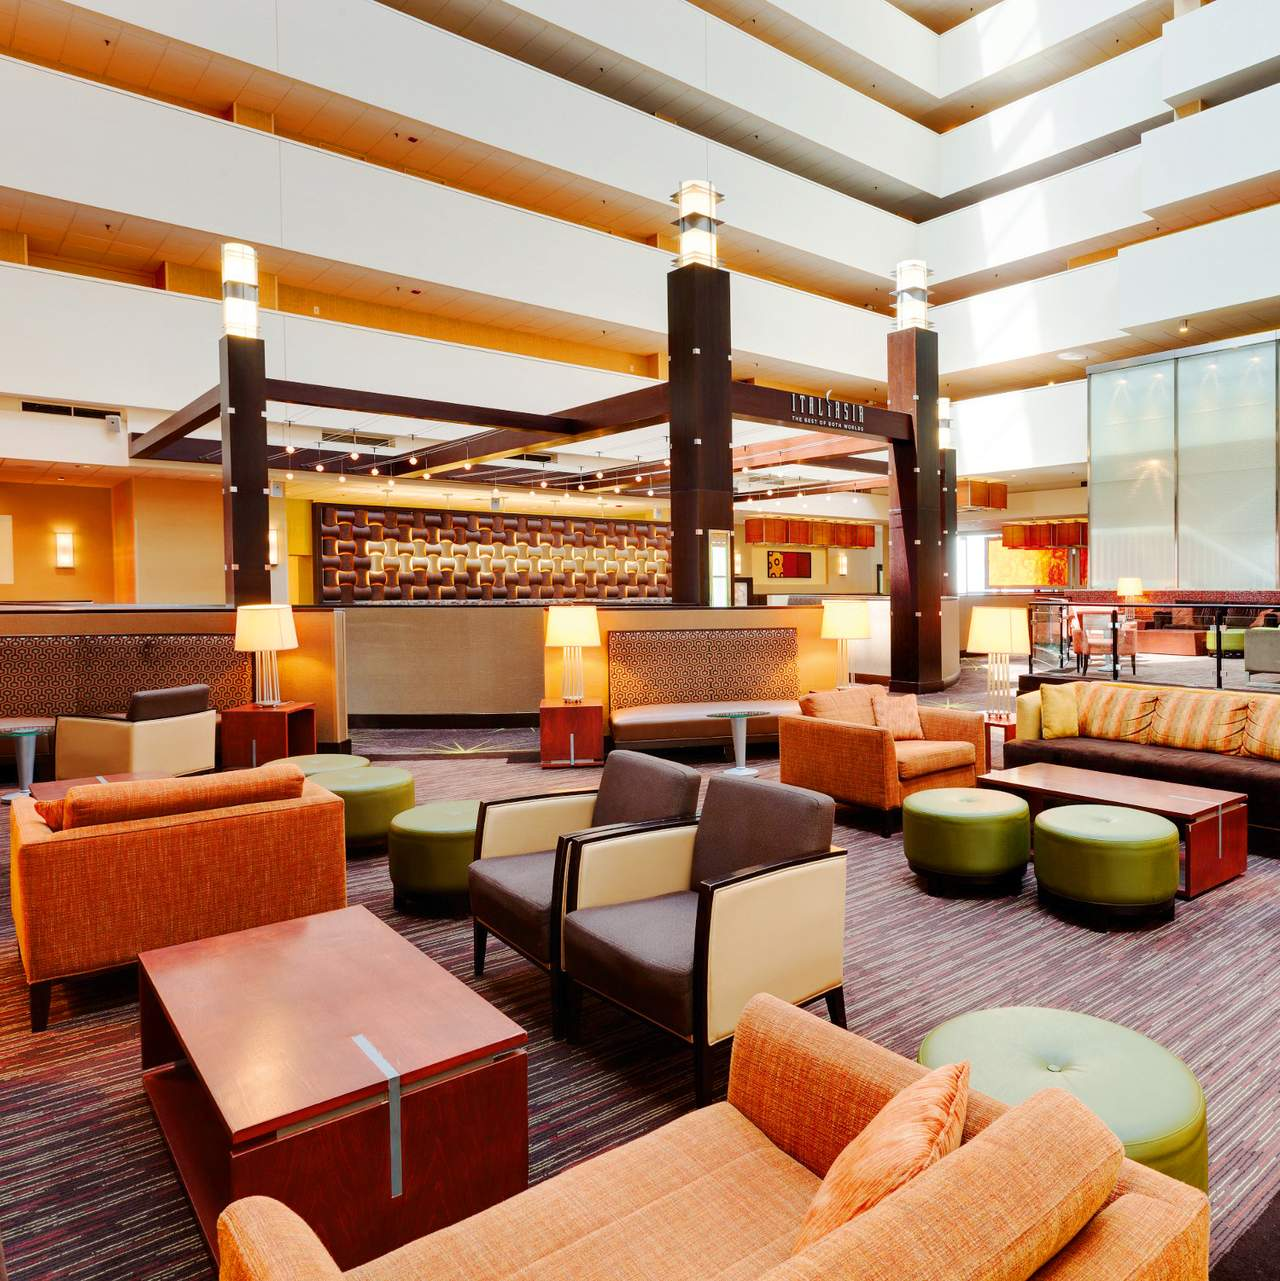 Hotel illinois holiday inn mart plaza canusa for Stylische hotels